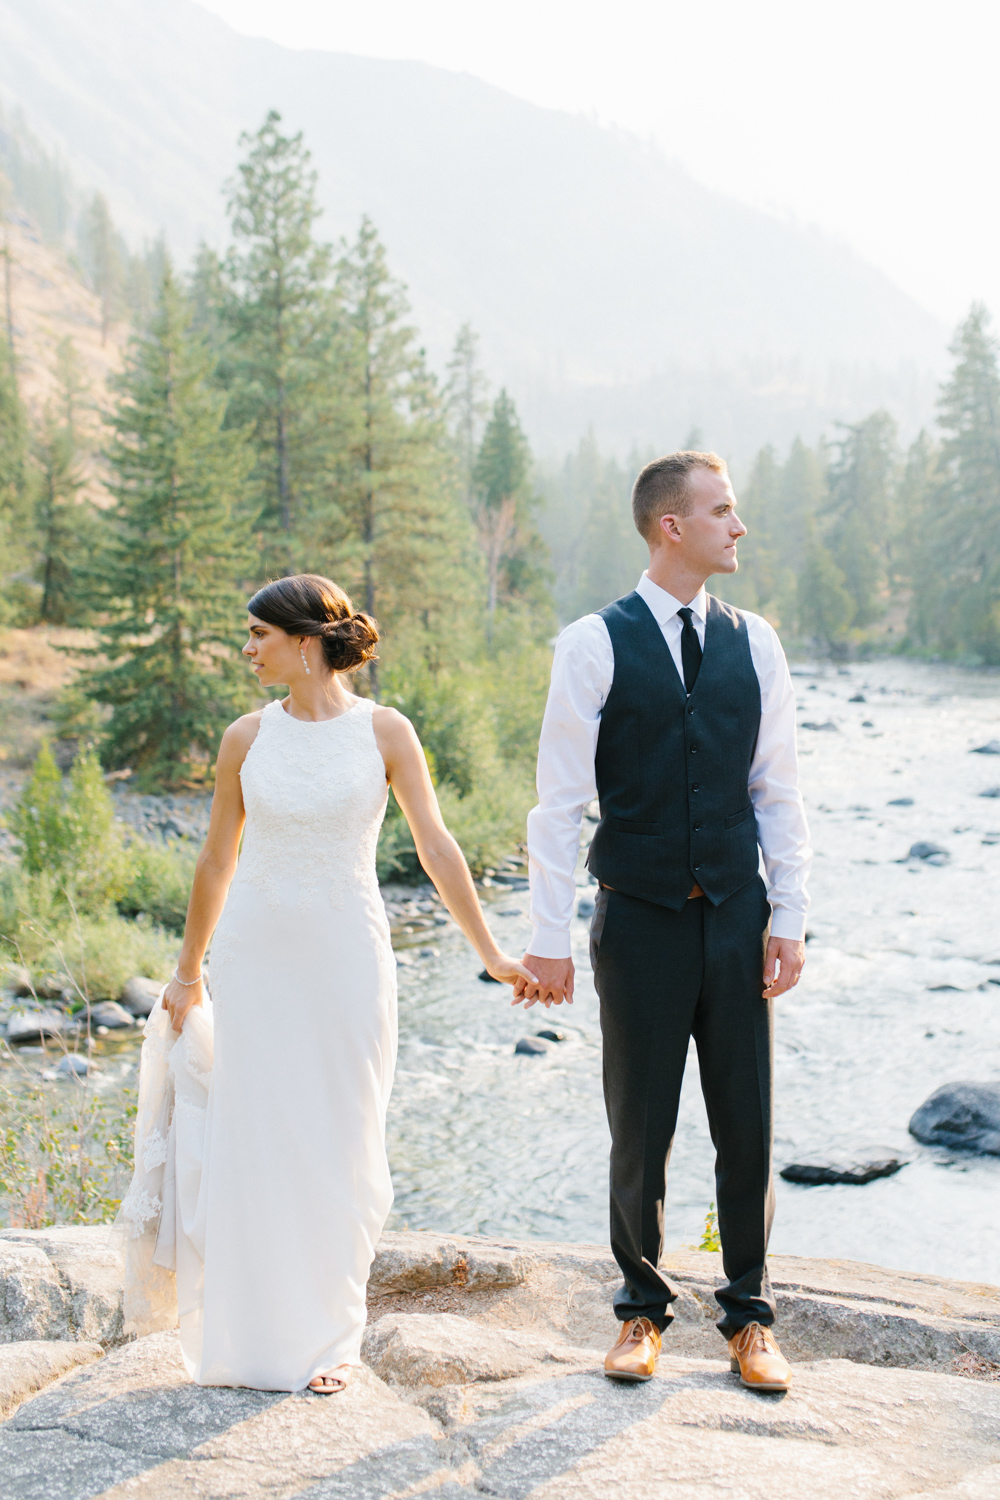 Grey and White Wedding in the Mountains of Leavenworth, Washington | Sleeping Lady | Classic and Timeless Wedding | VSCO | Stunning Mountain Top Bride and Groom Portraits on the Icicle River.jpg-3375.jpg